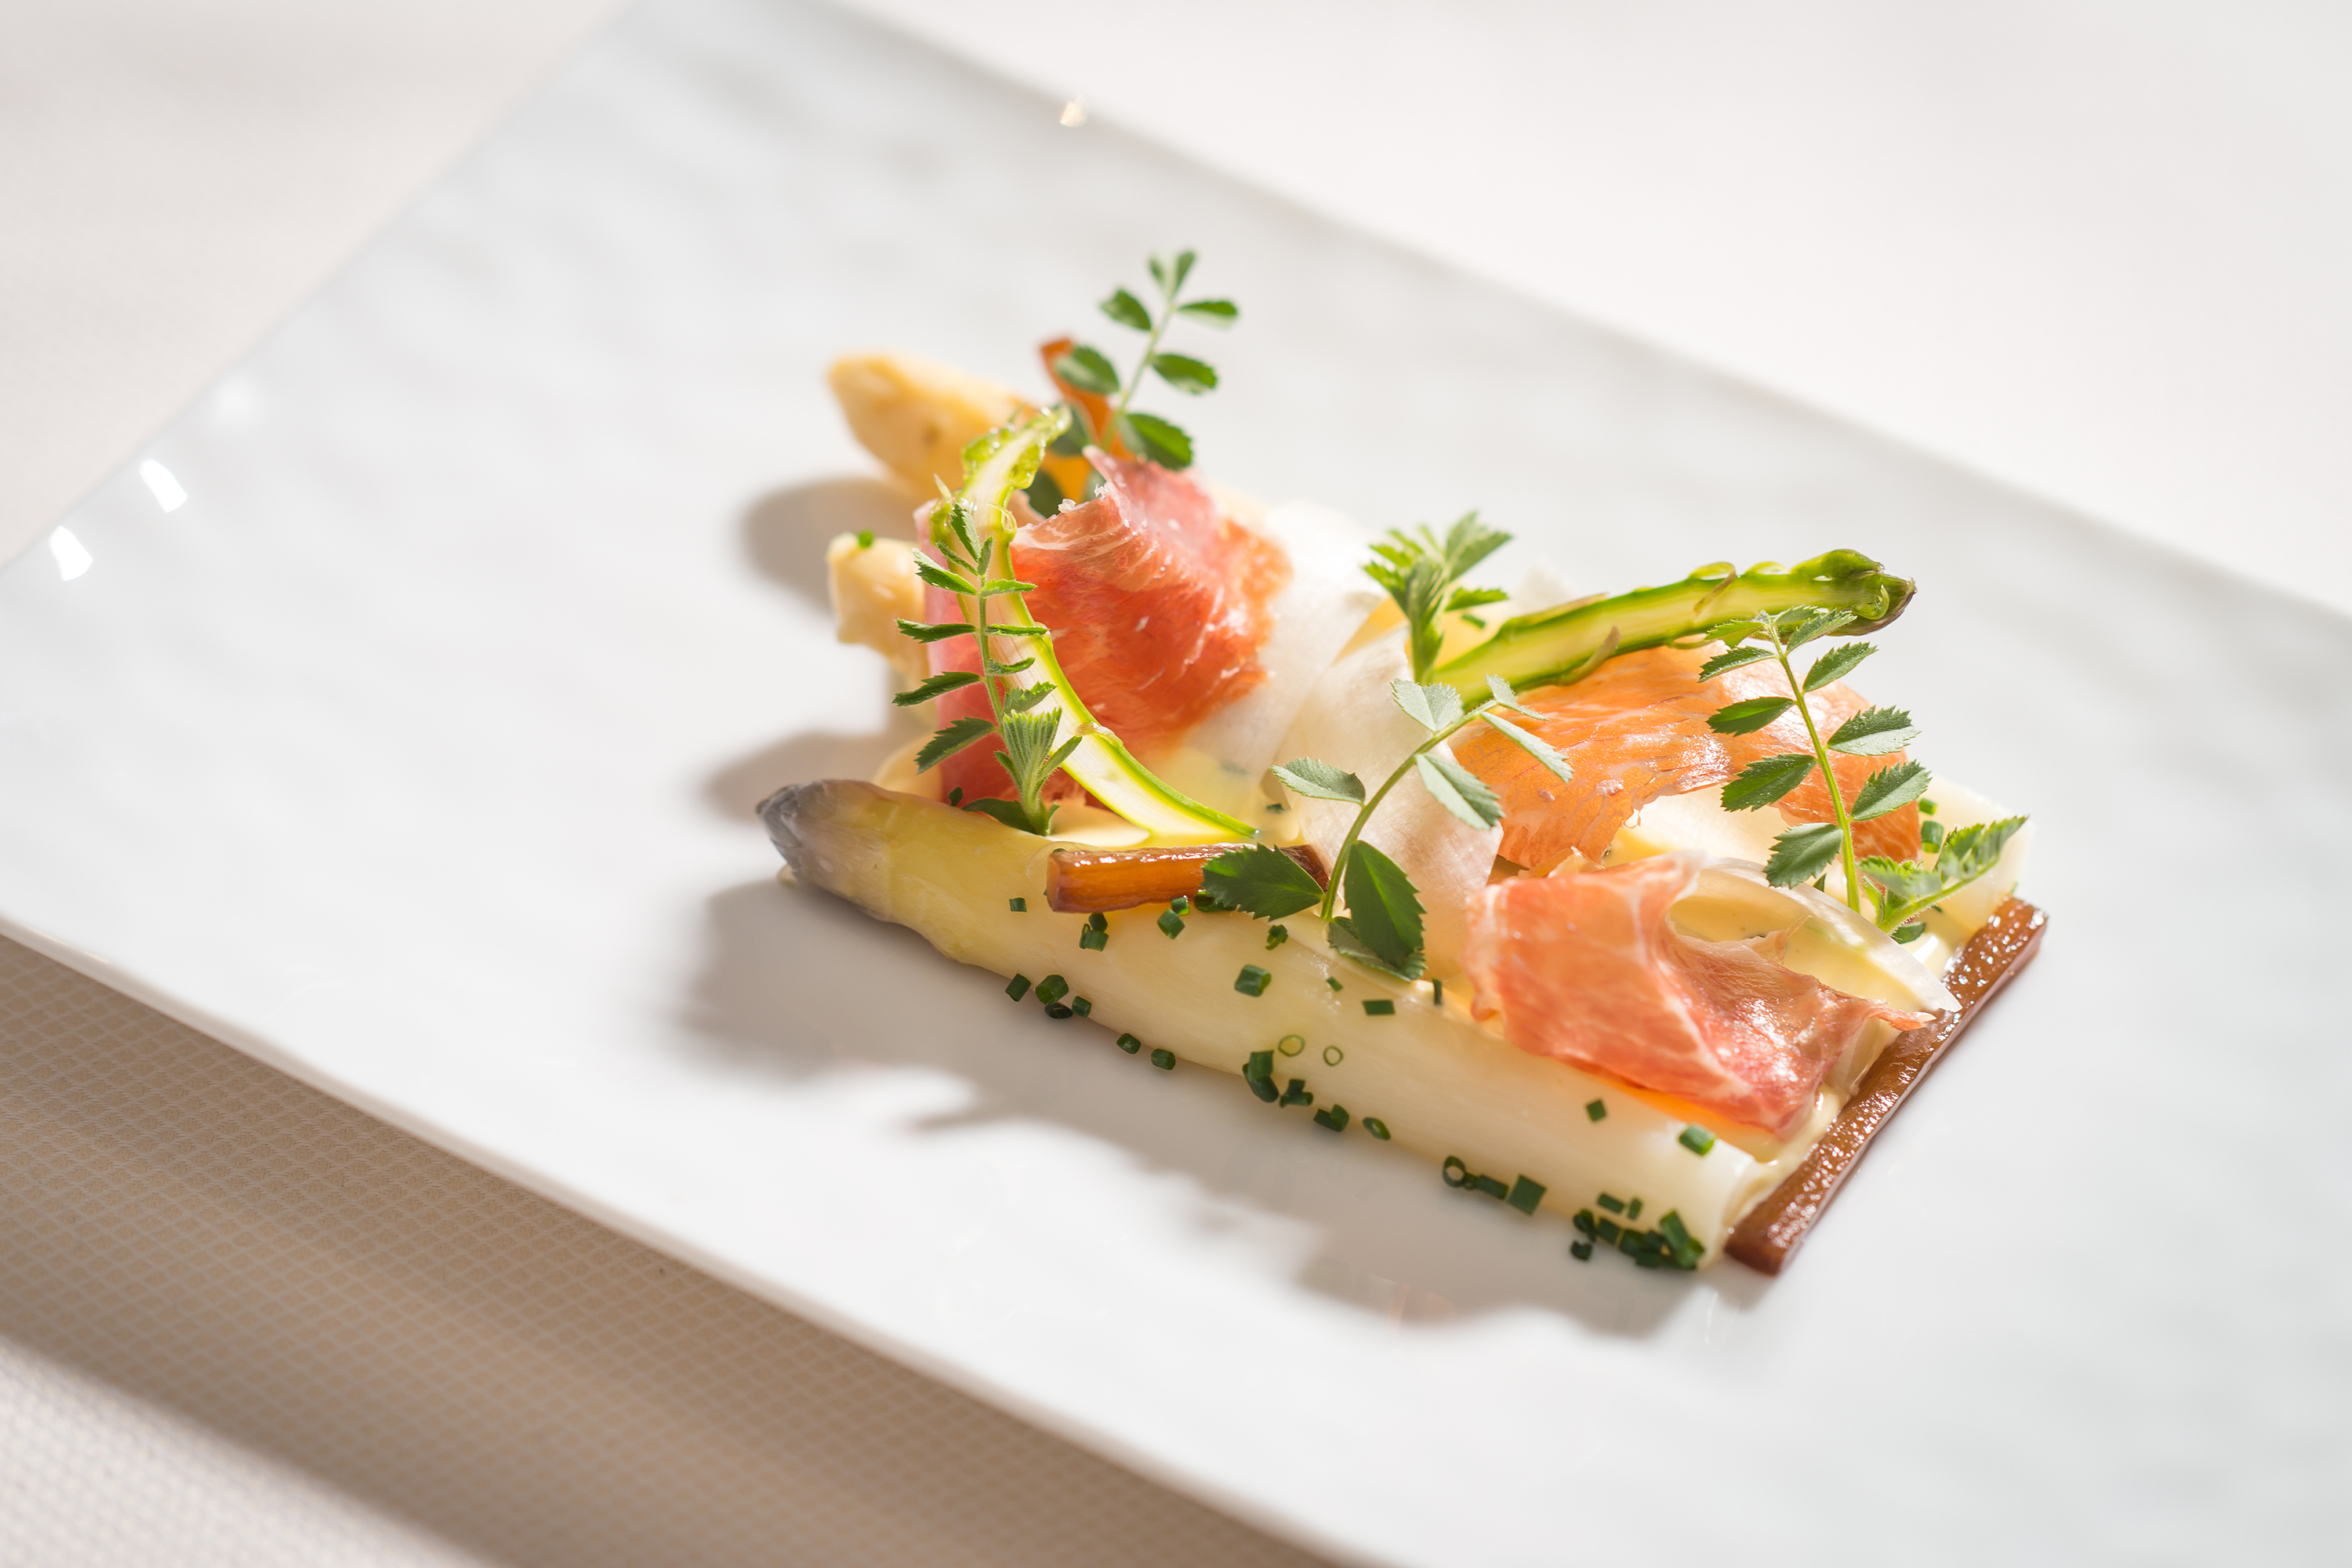 Daniel nyc 39 s french dining experience hooked on everything for French canape menu